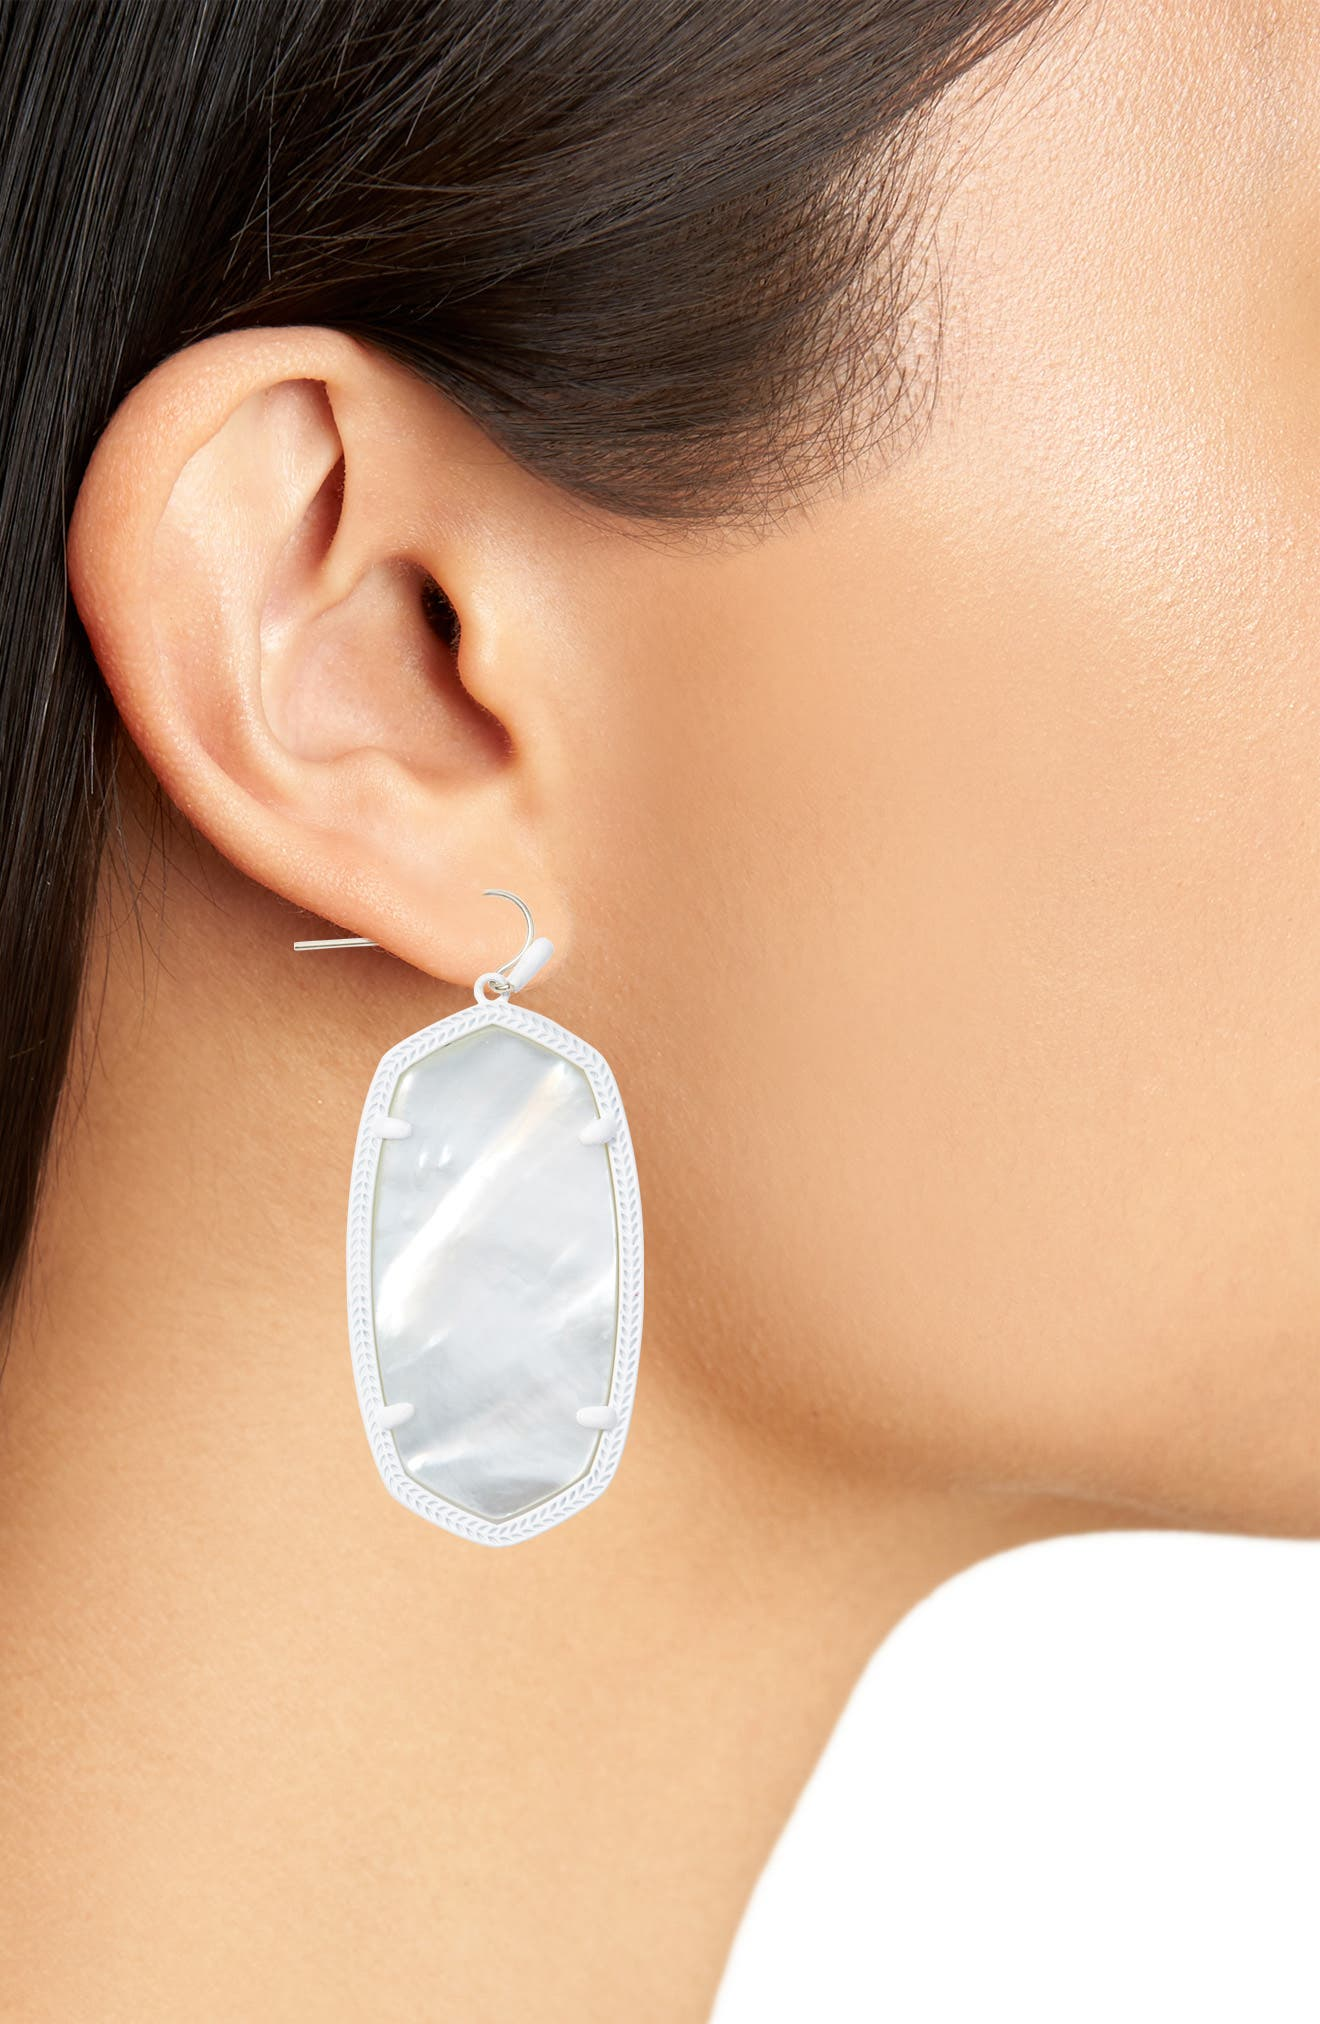 Danielle - Large Oval Statement Earrings,                             Alternate thumbnail 2, color,                             Ivory Mop/ Matte White